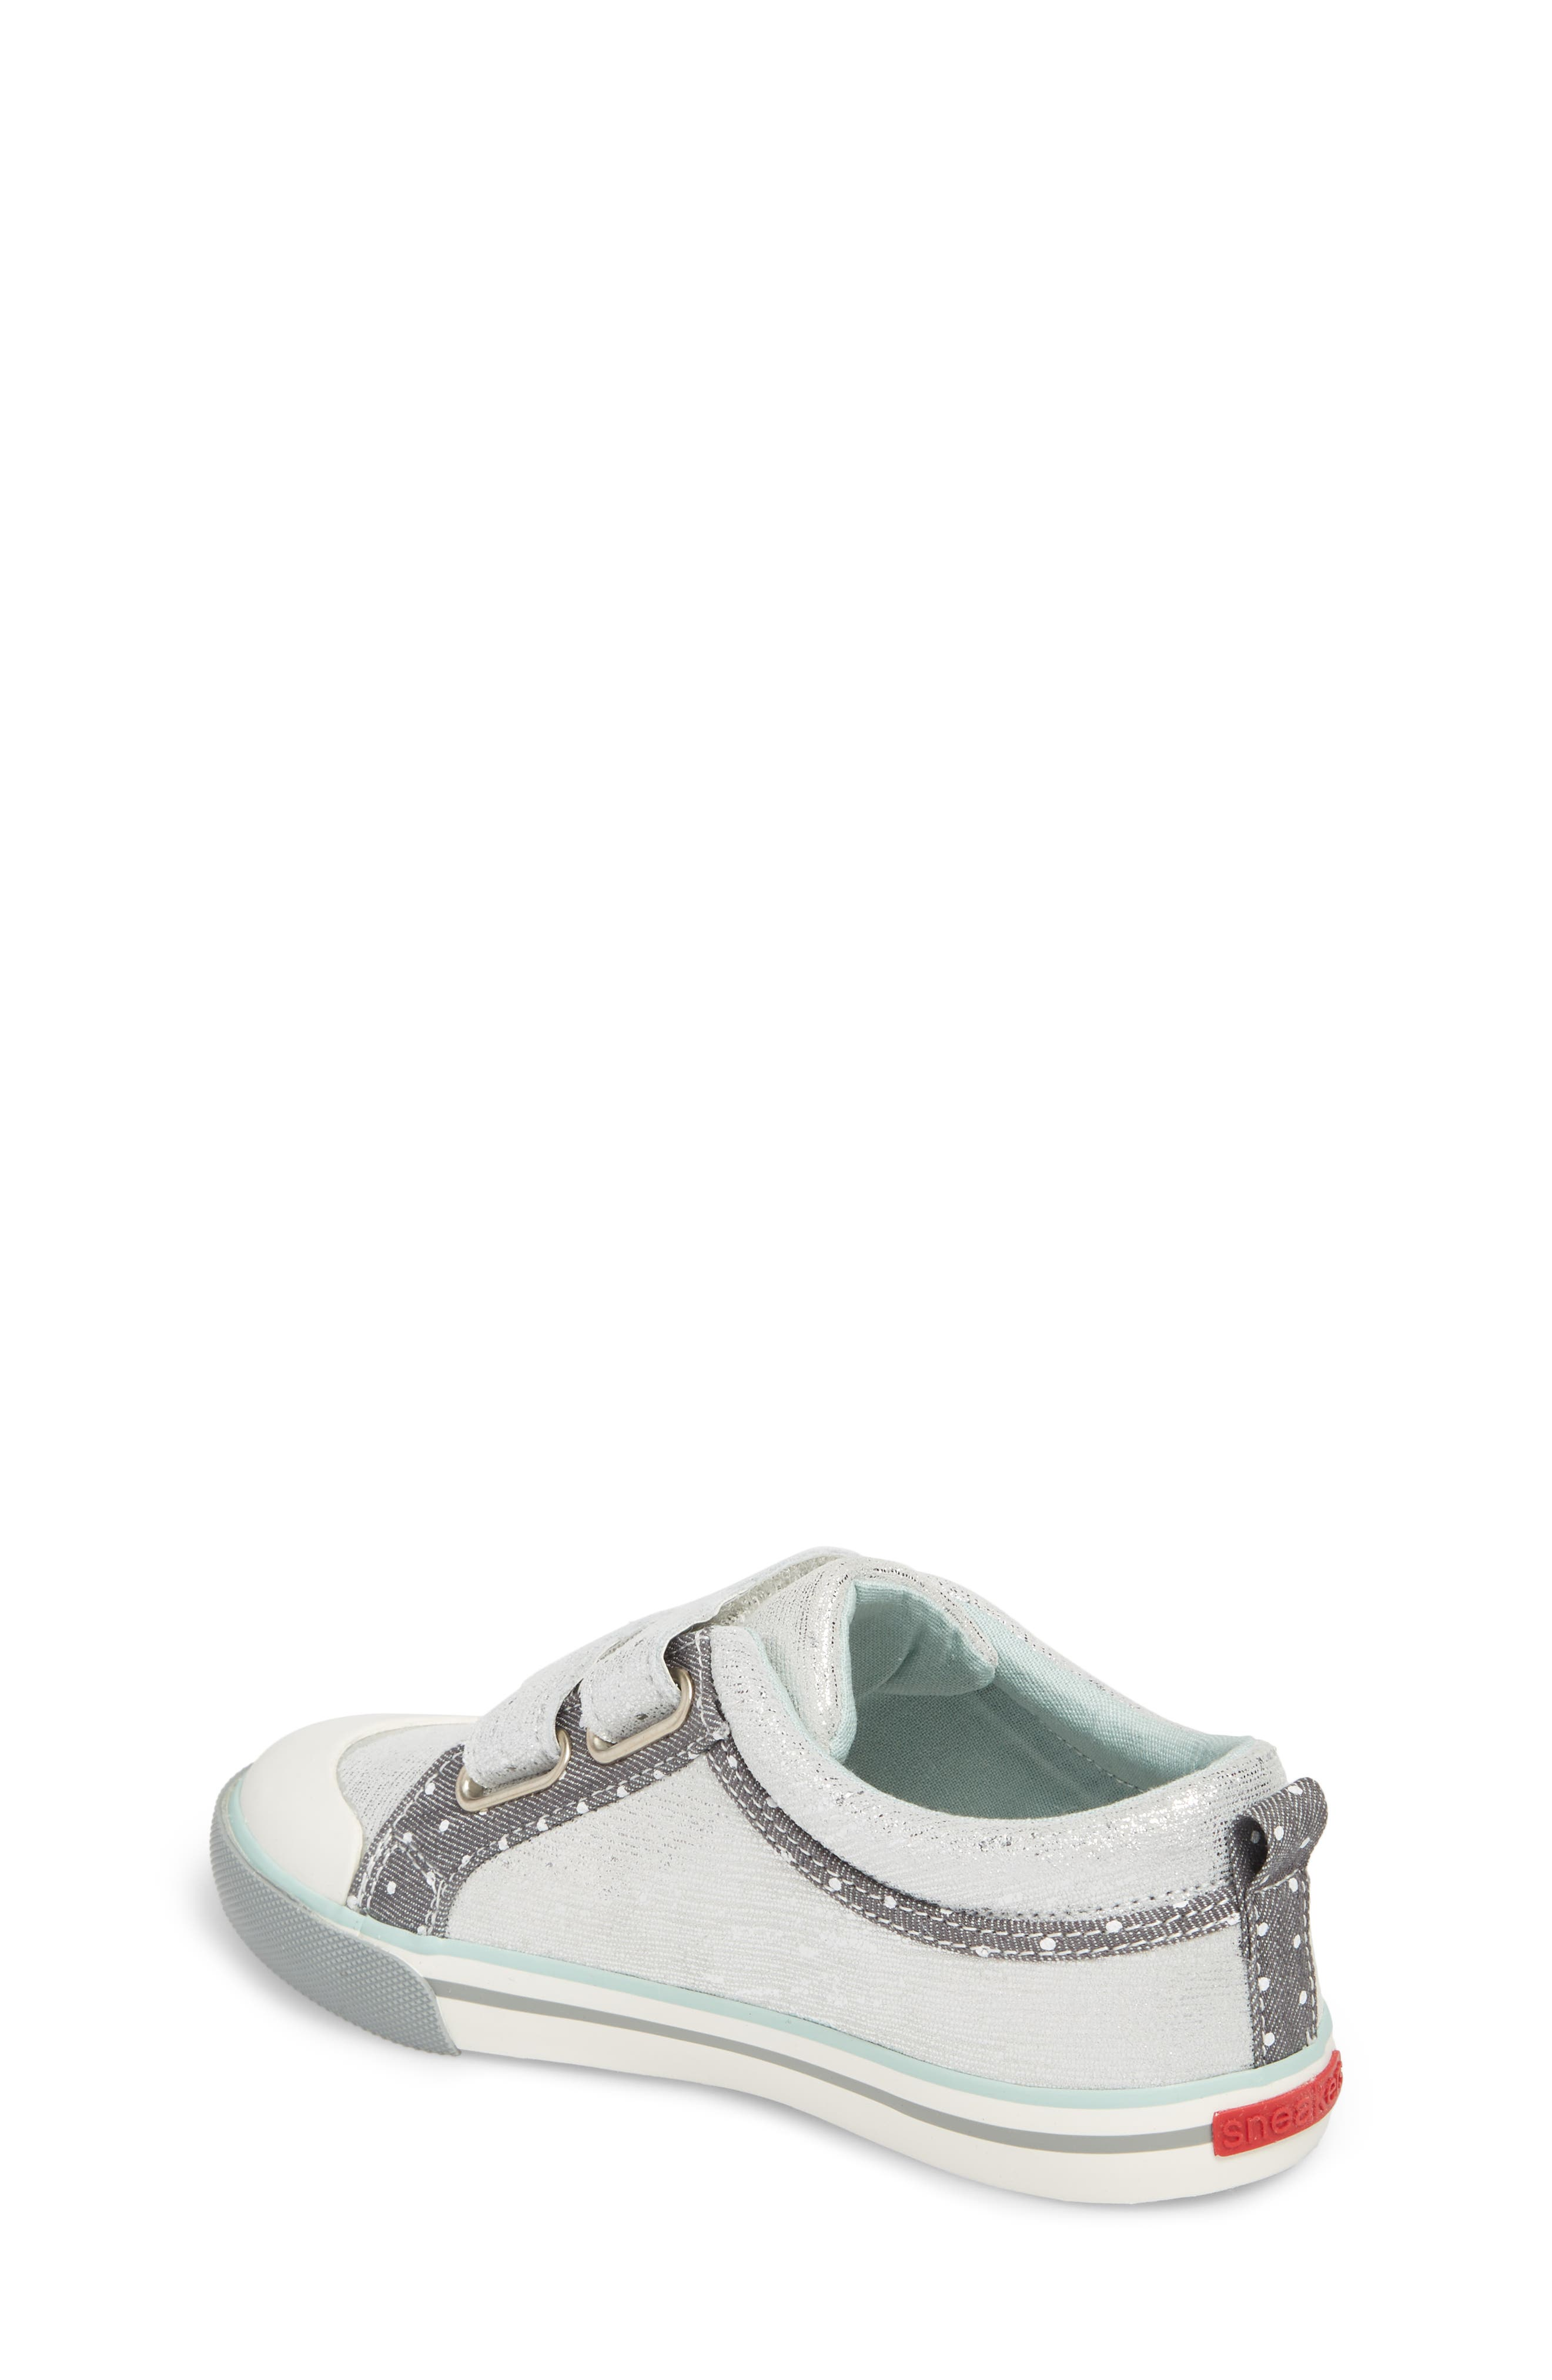 Robyne Sneaker,                             Alternate thumbnail 2, color,                             SILVER LEATHER